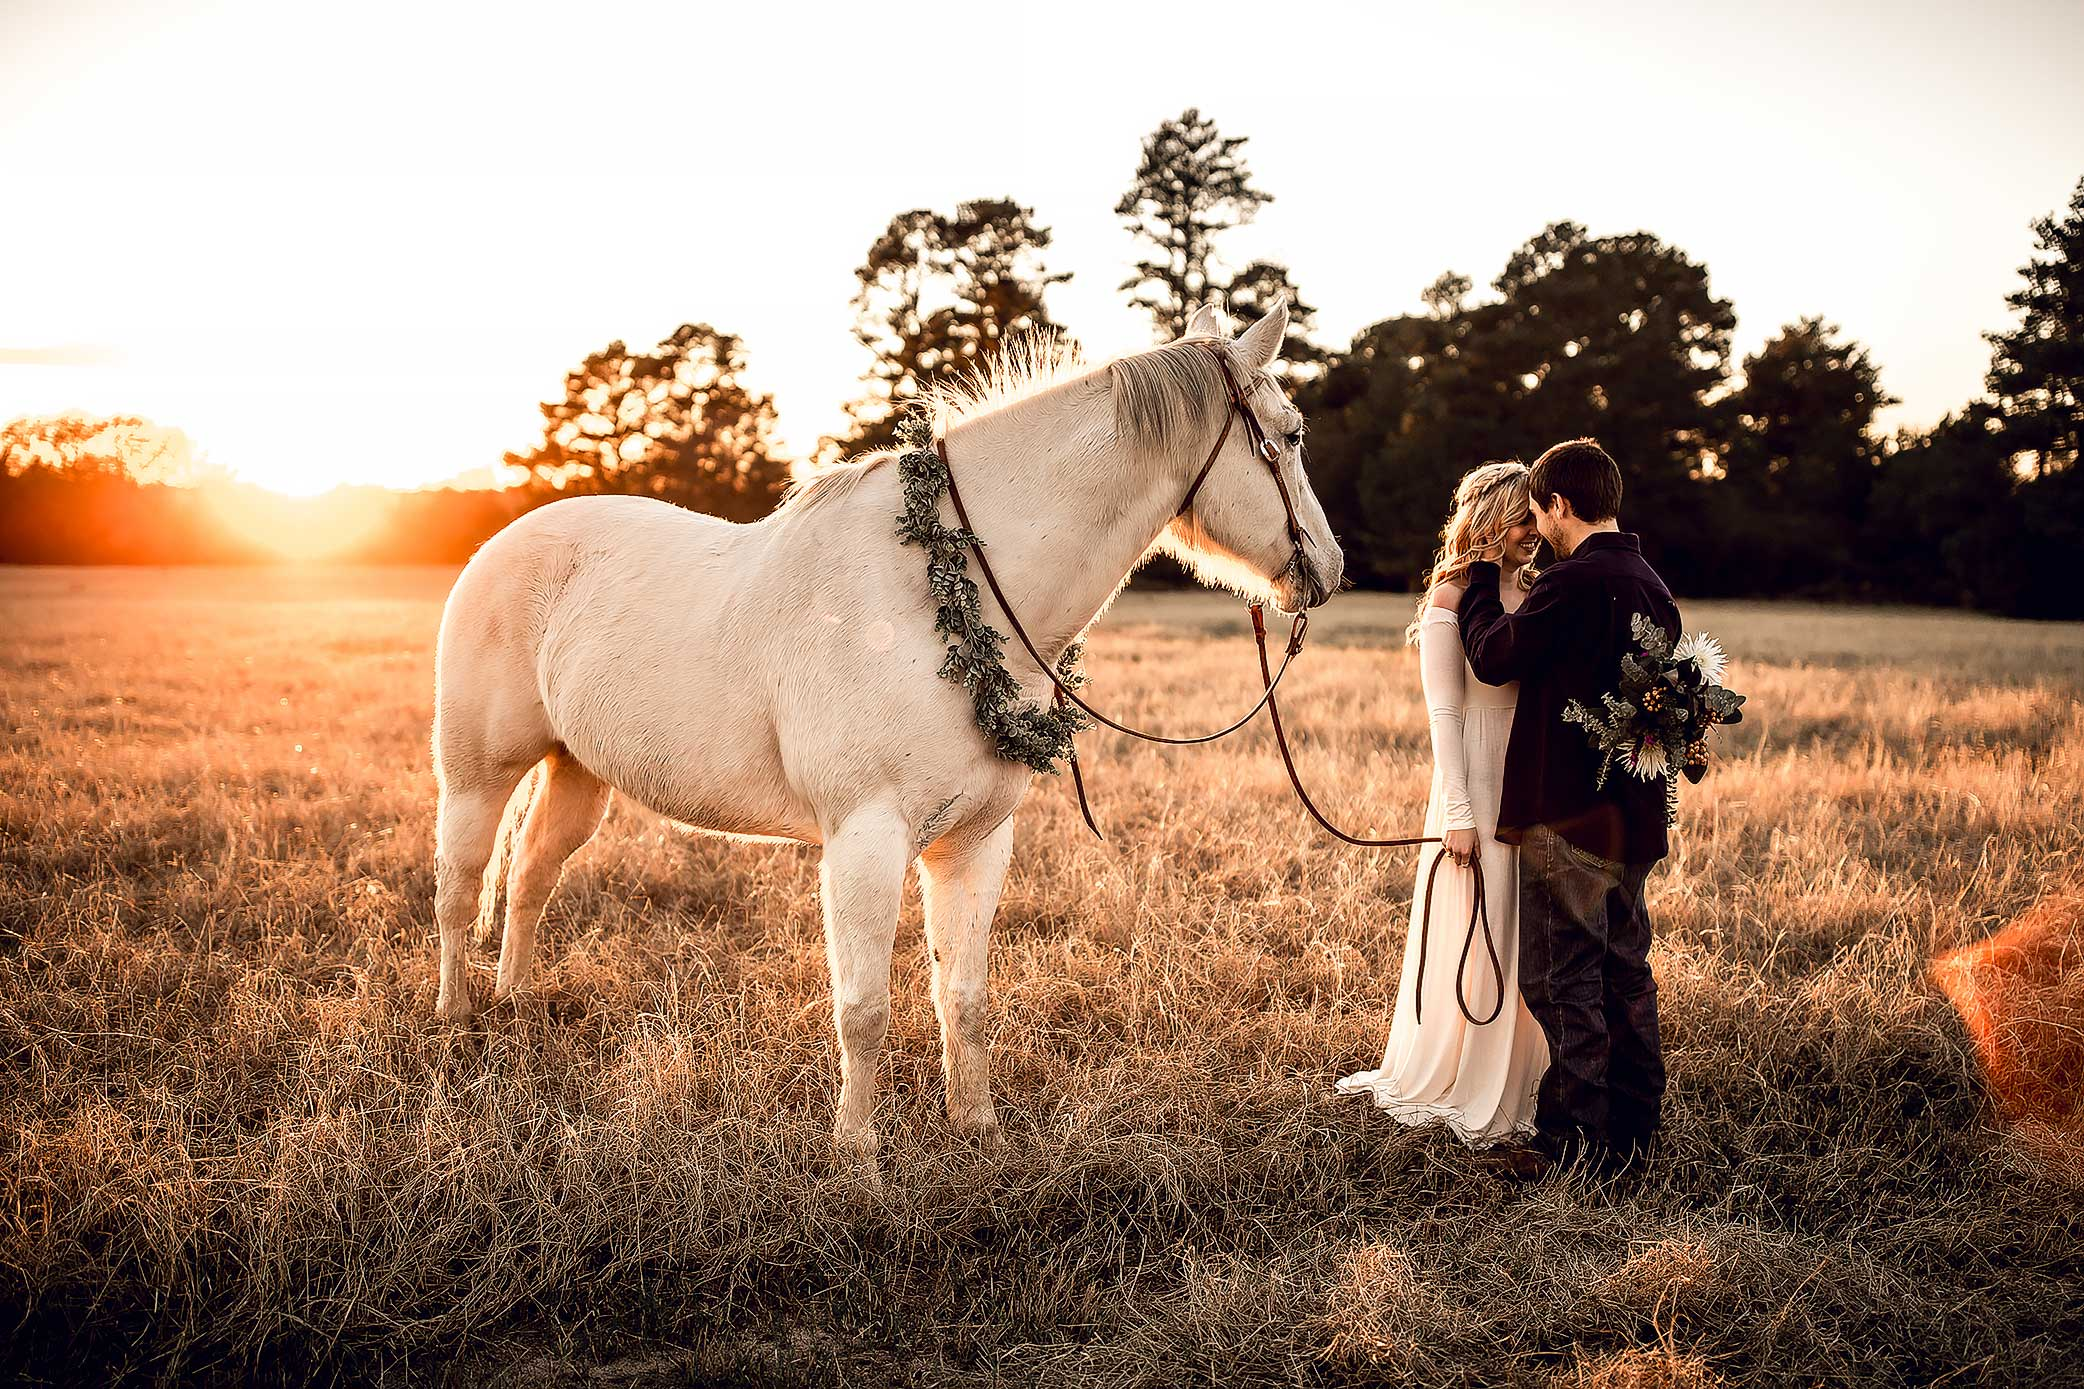 shelby-schiller-photography-couples-boho-white-horse-college-station-tx.jpg